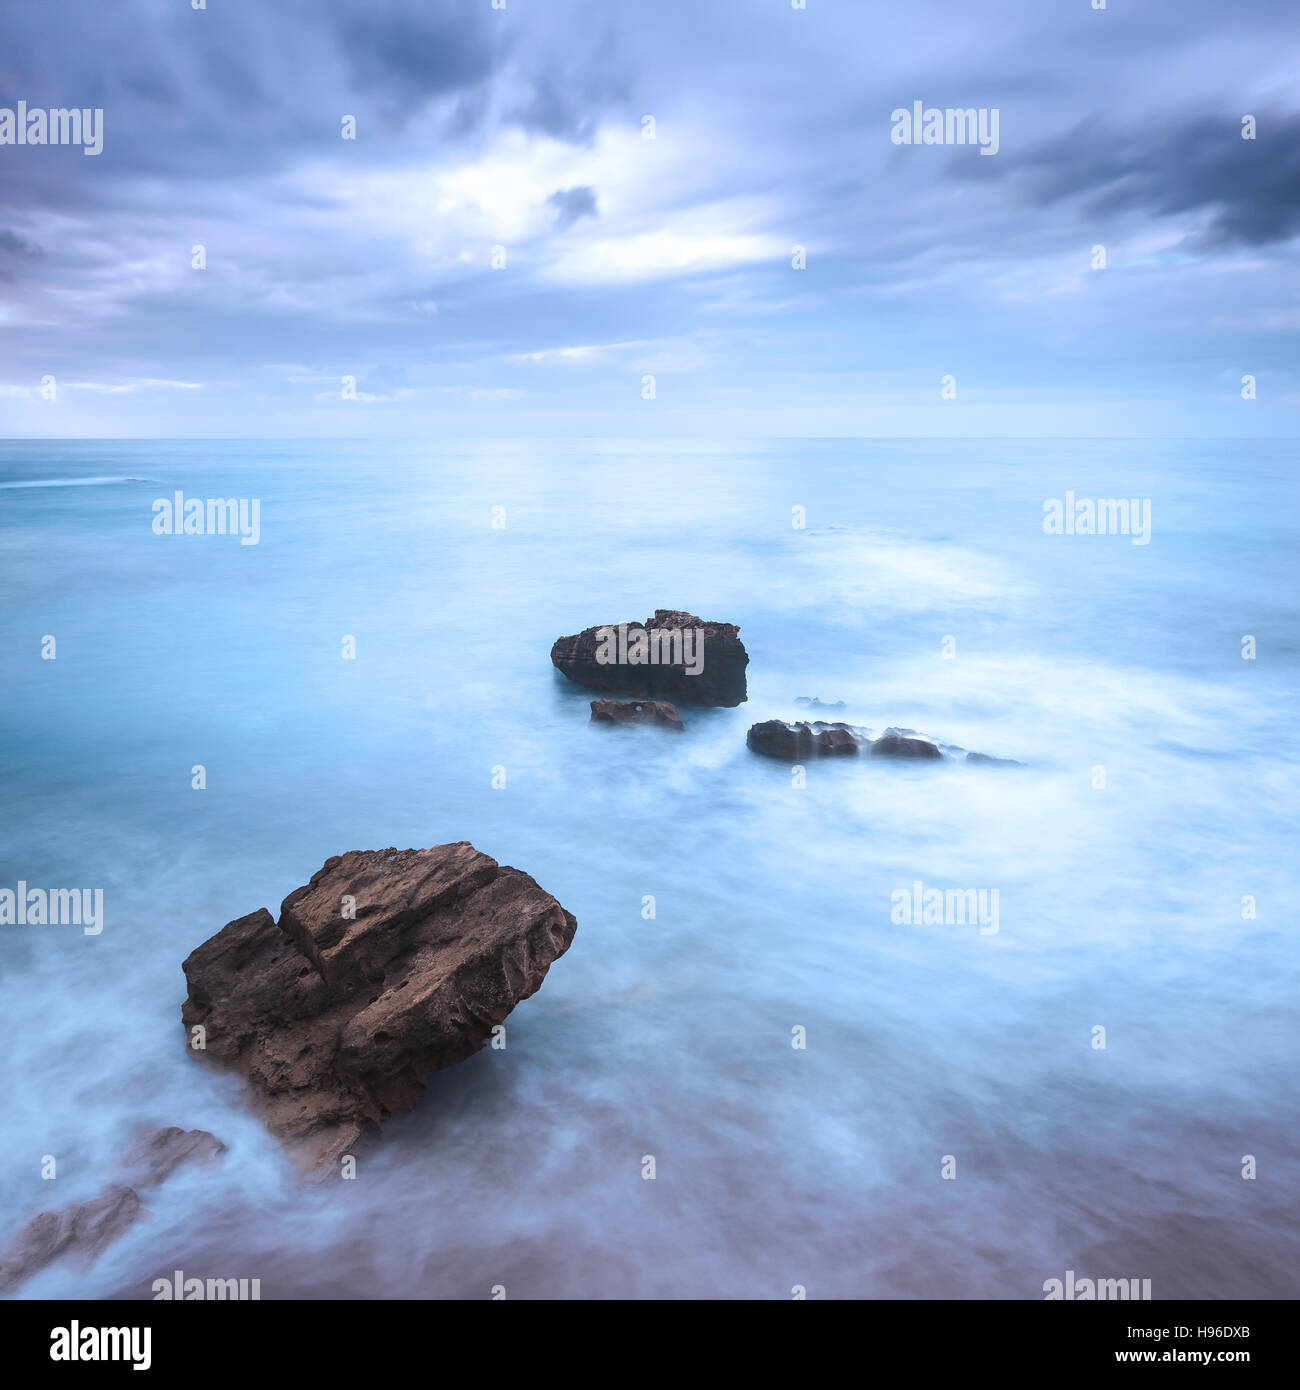 Rocks in a blue ocean waves under cloudy sky in a bad weather. Long exposure photography Stock Photo